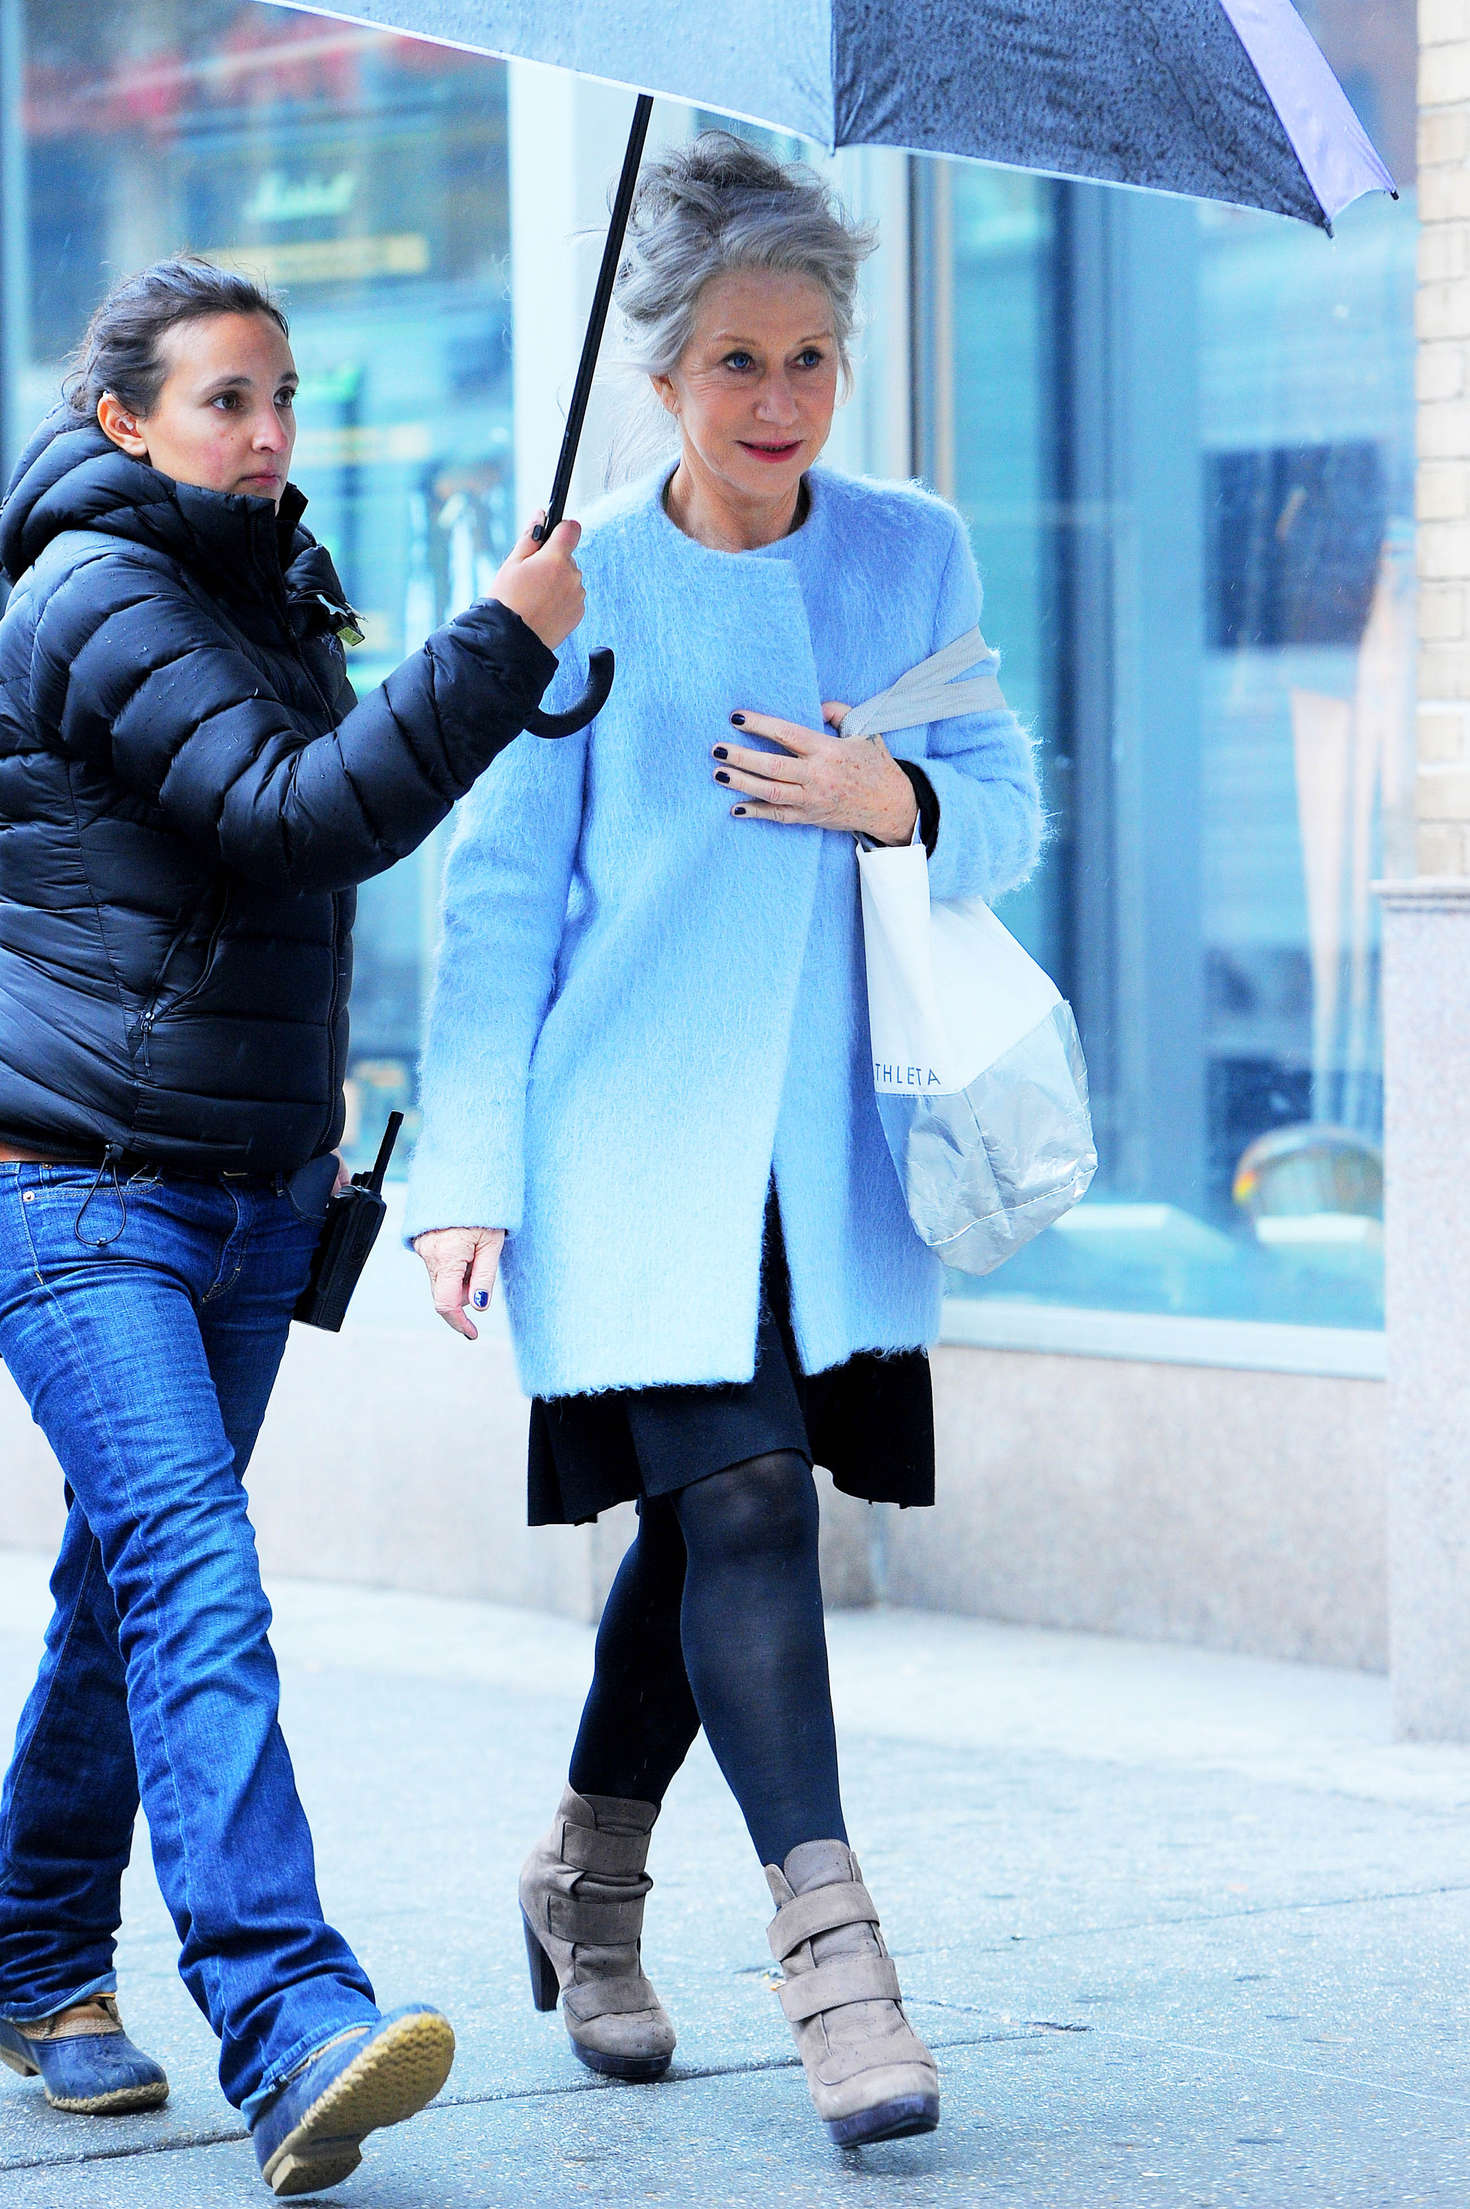 Helen Mirren on the set of Collateral Beauty in New York